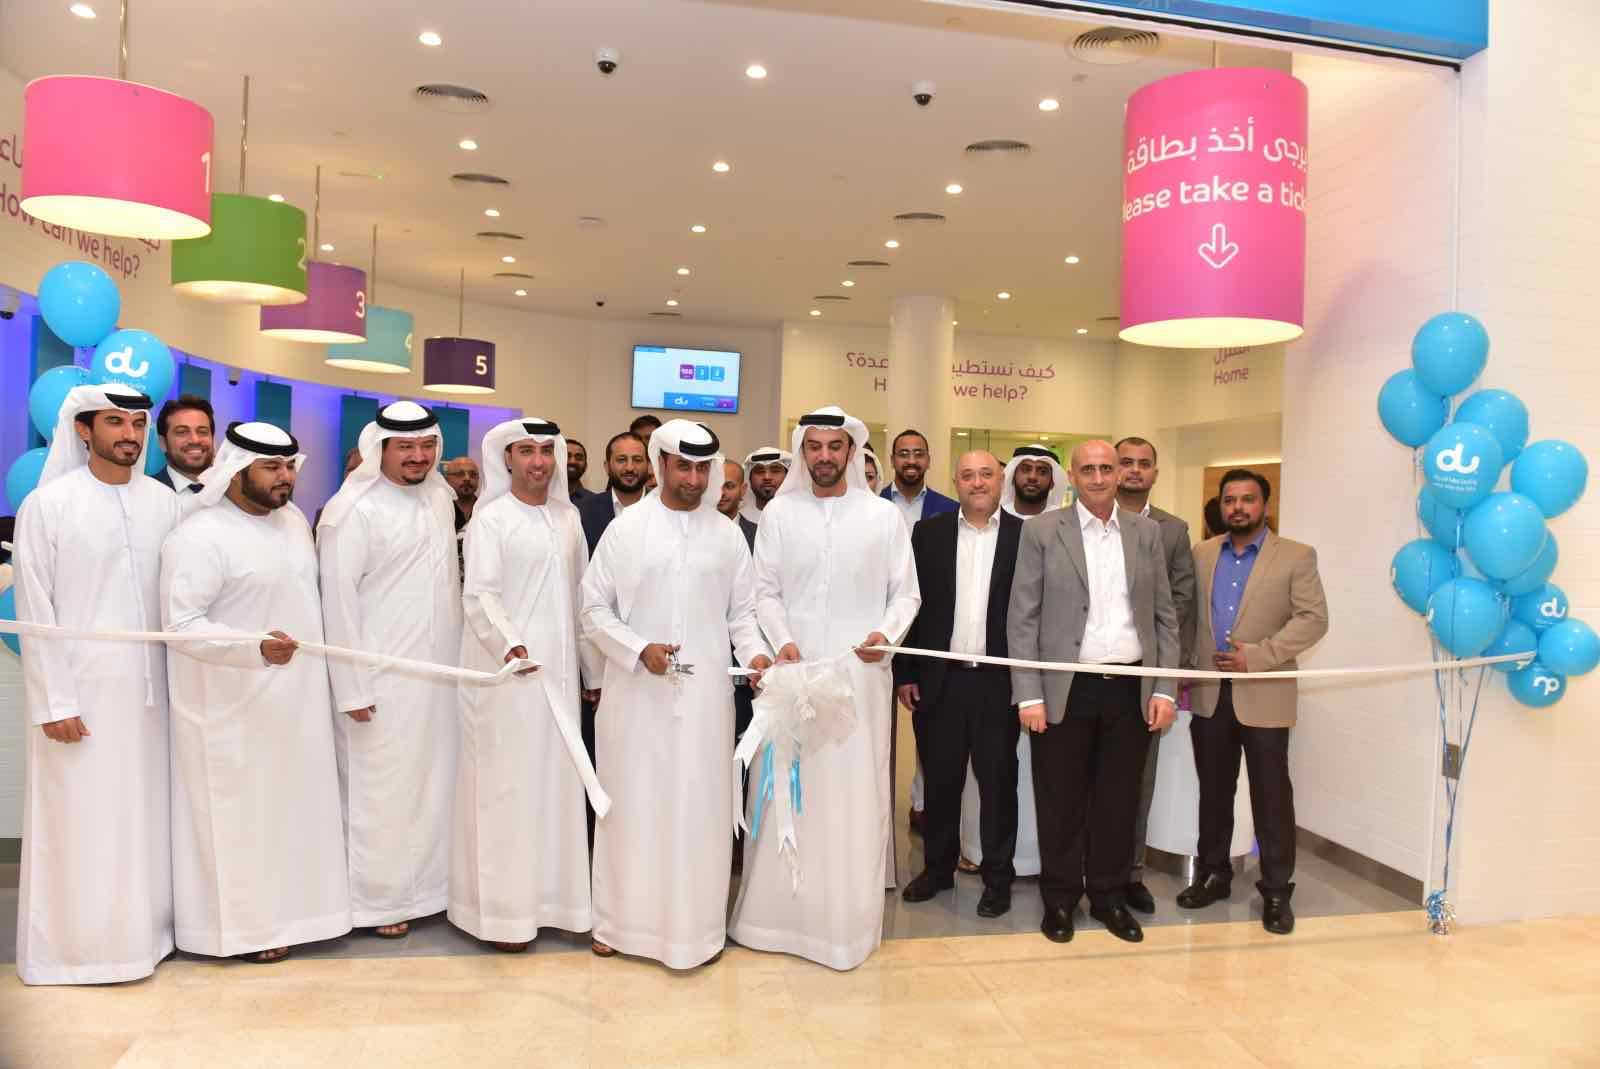 du Opens new Retail Store at Yas Mall in Abu Dhabi